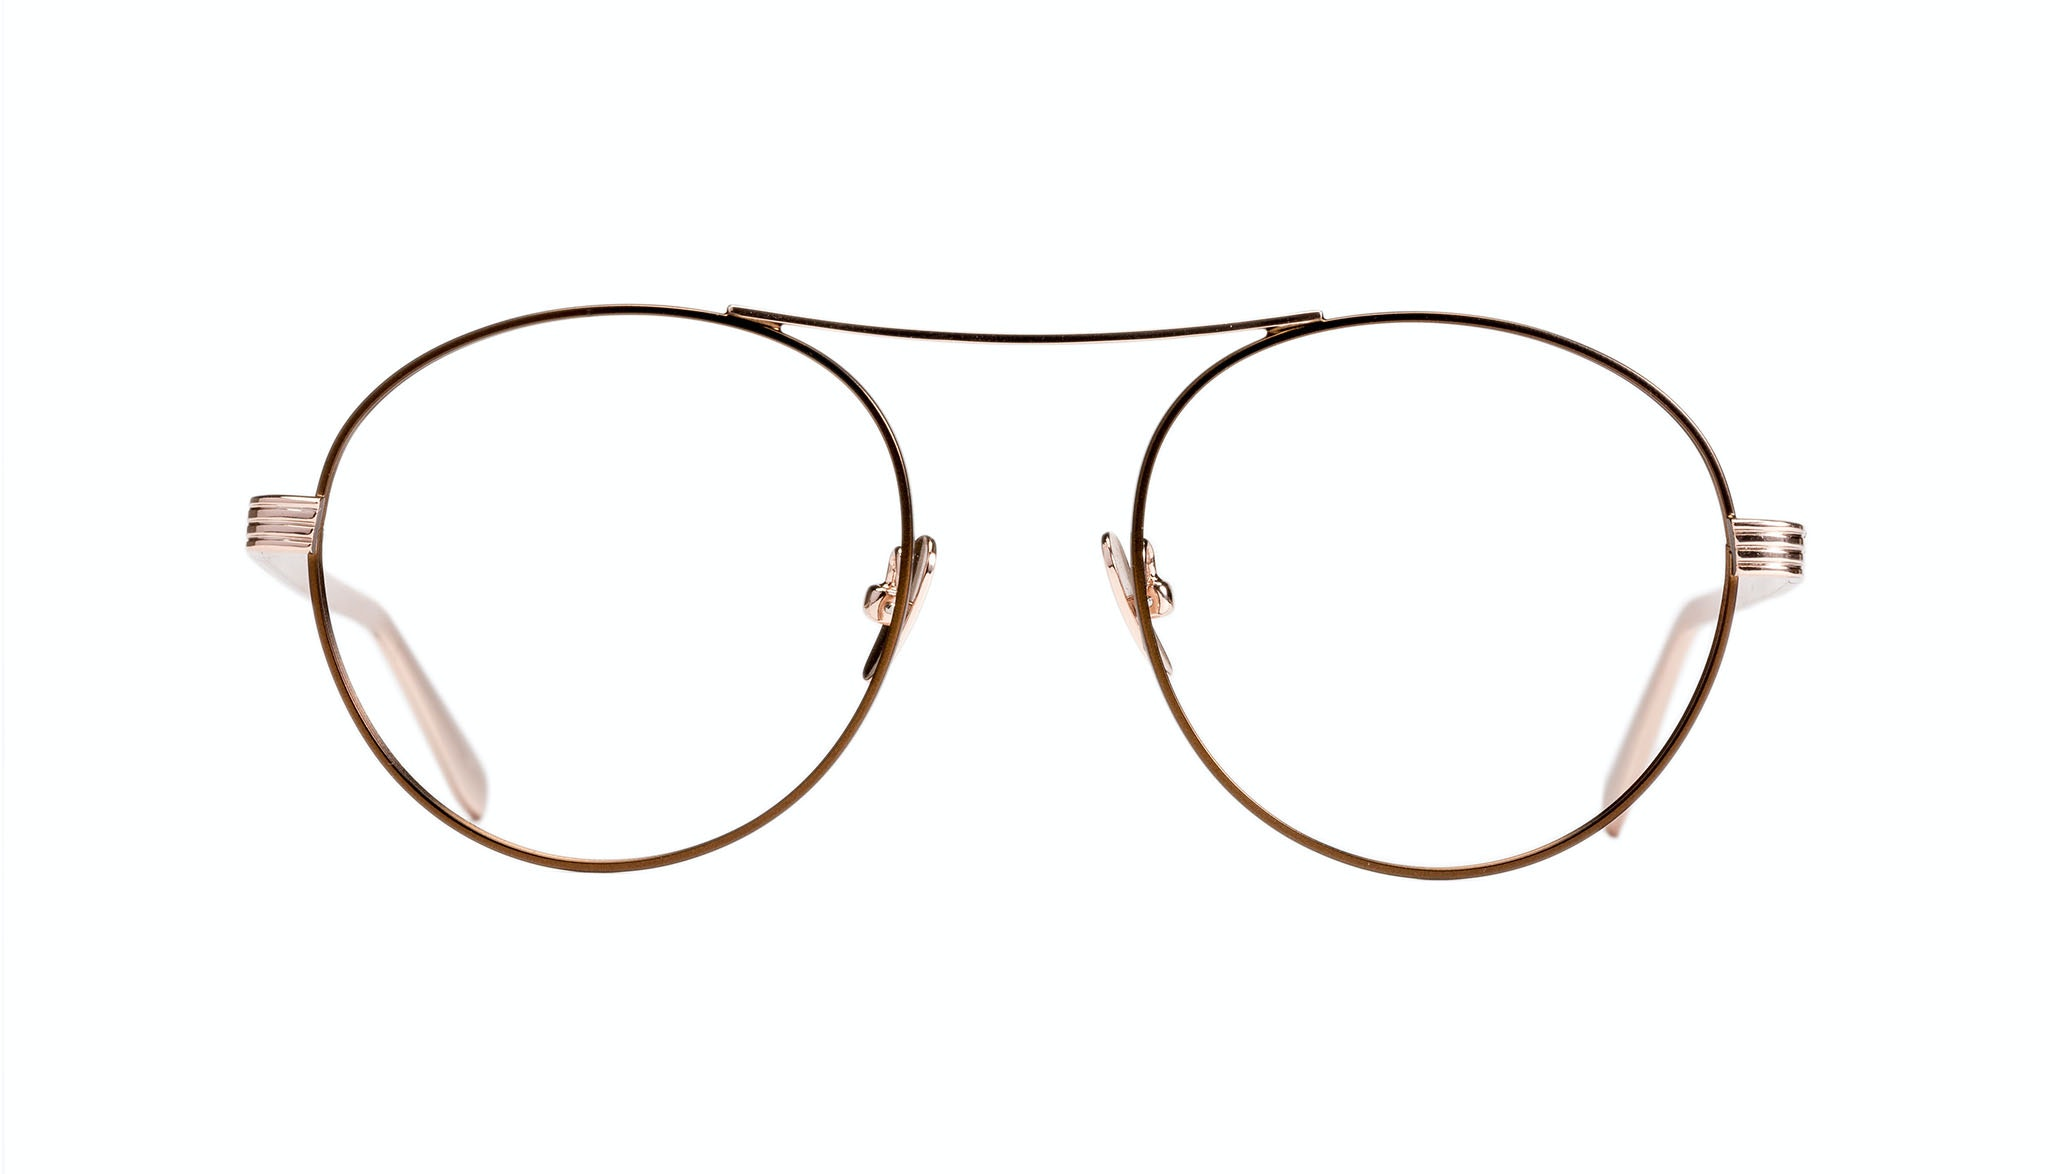 Affordable Fashion Glasses Round Eyeglasses Women Prize Golden Lilac